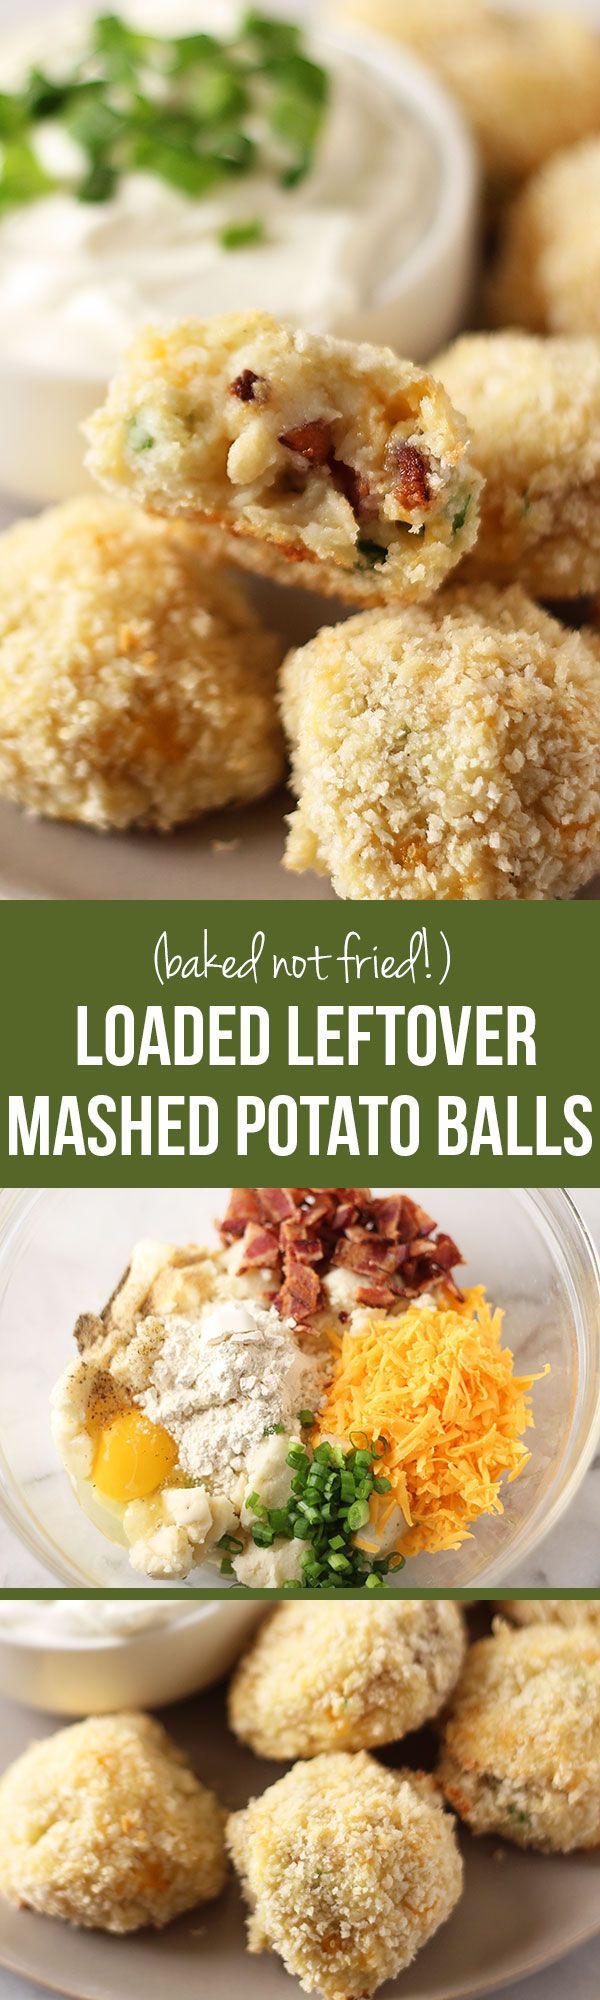 Leftover Mashed Potato Balls take advantage of extra Thanksgiving mashed potatoes by turning them into something even better. Baked, not fried! With cheddar, bacon, onion, and sour cream!